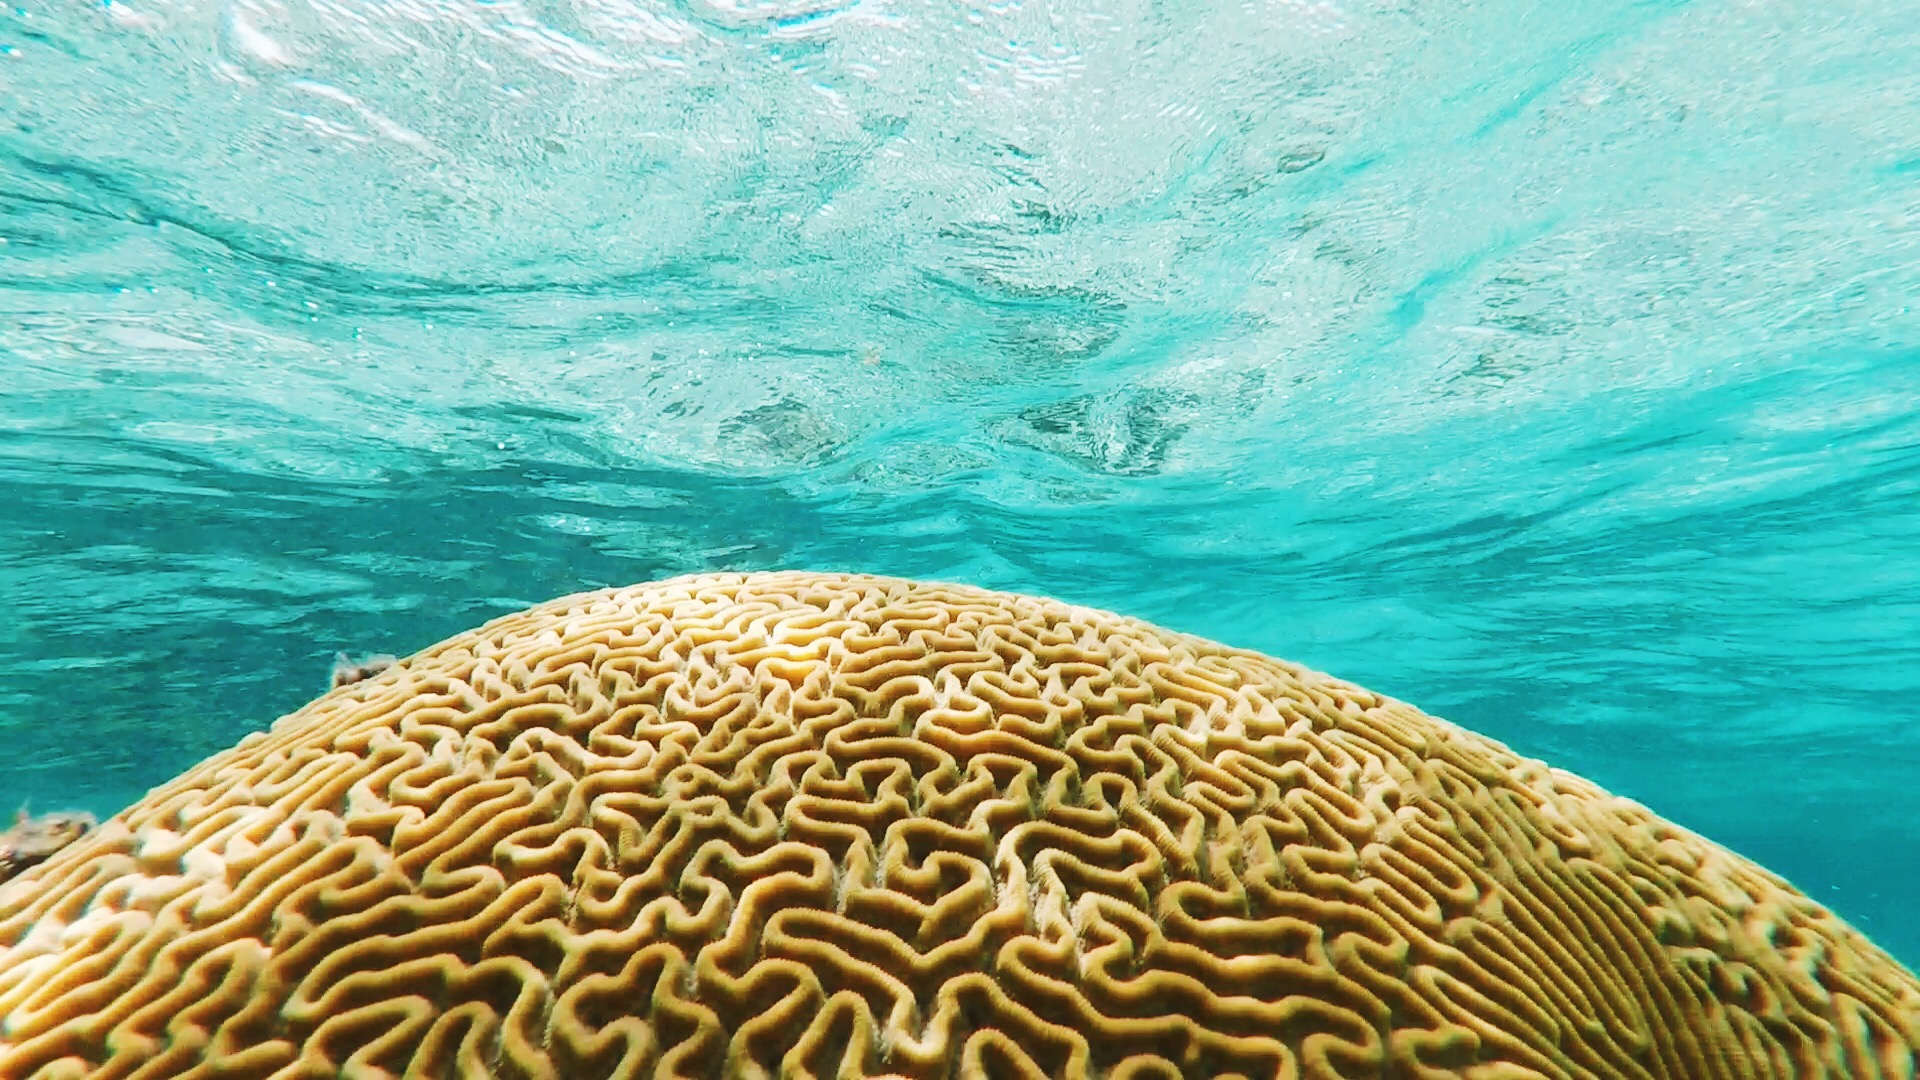 Crystal-clear water and a giant brain coral off the coast of Ambergris Caye